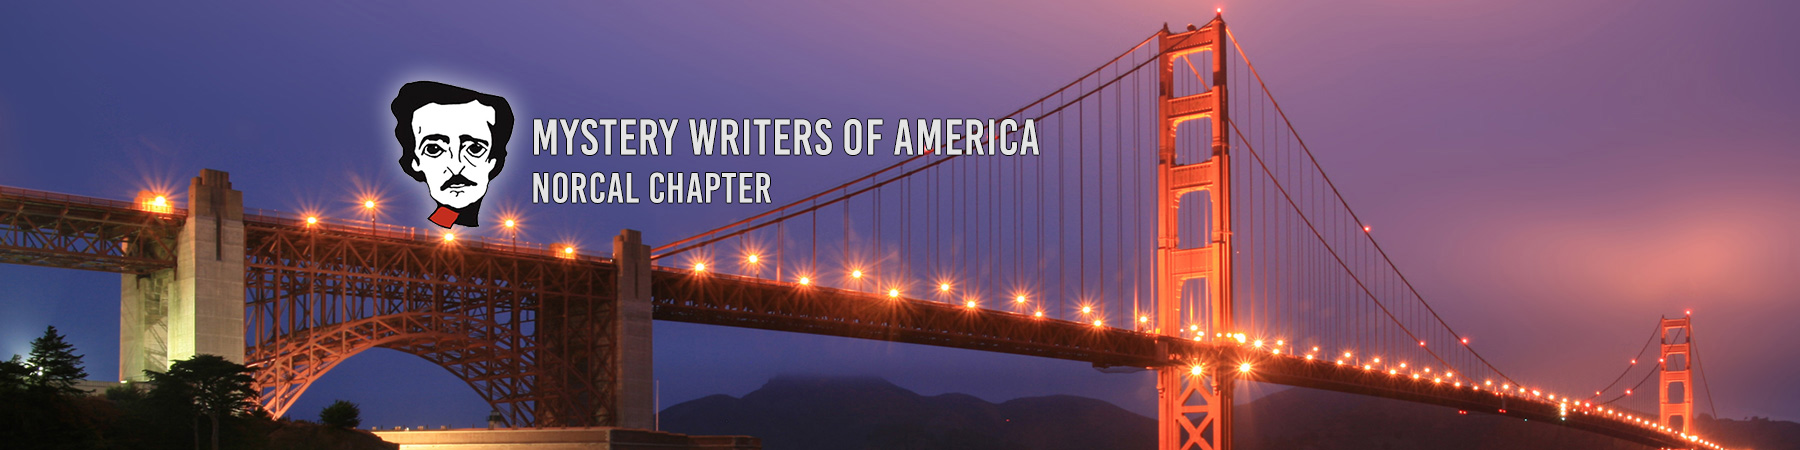 Mystery Writers of America NorCal Chapter